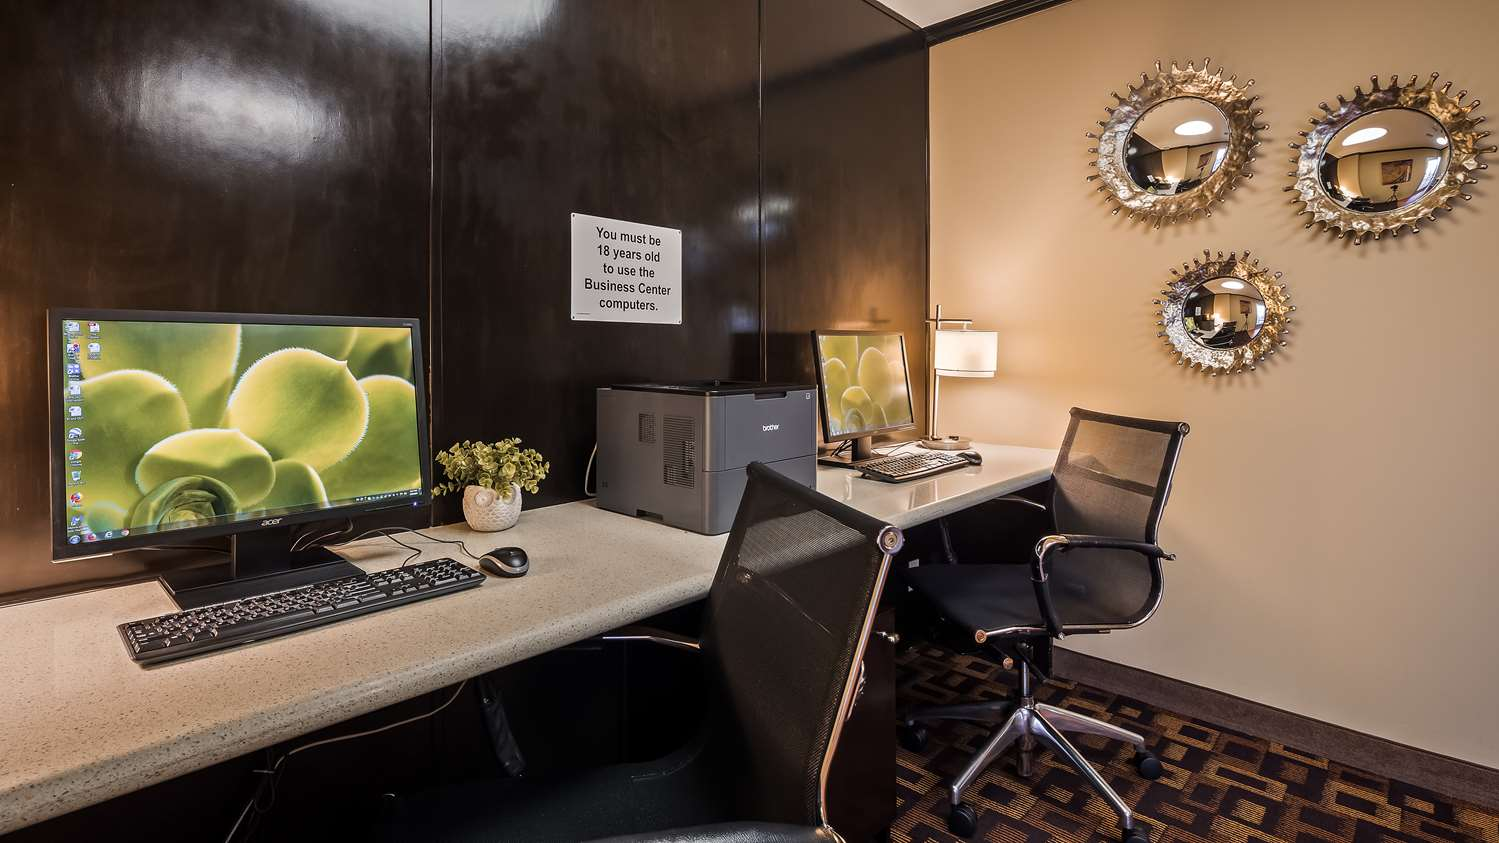 Photo of Best Western Business Center with 2 computers and chairs